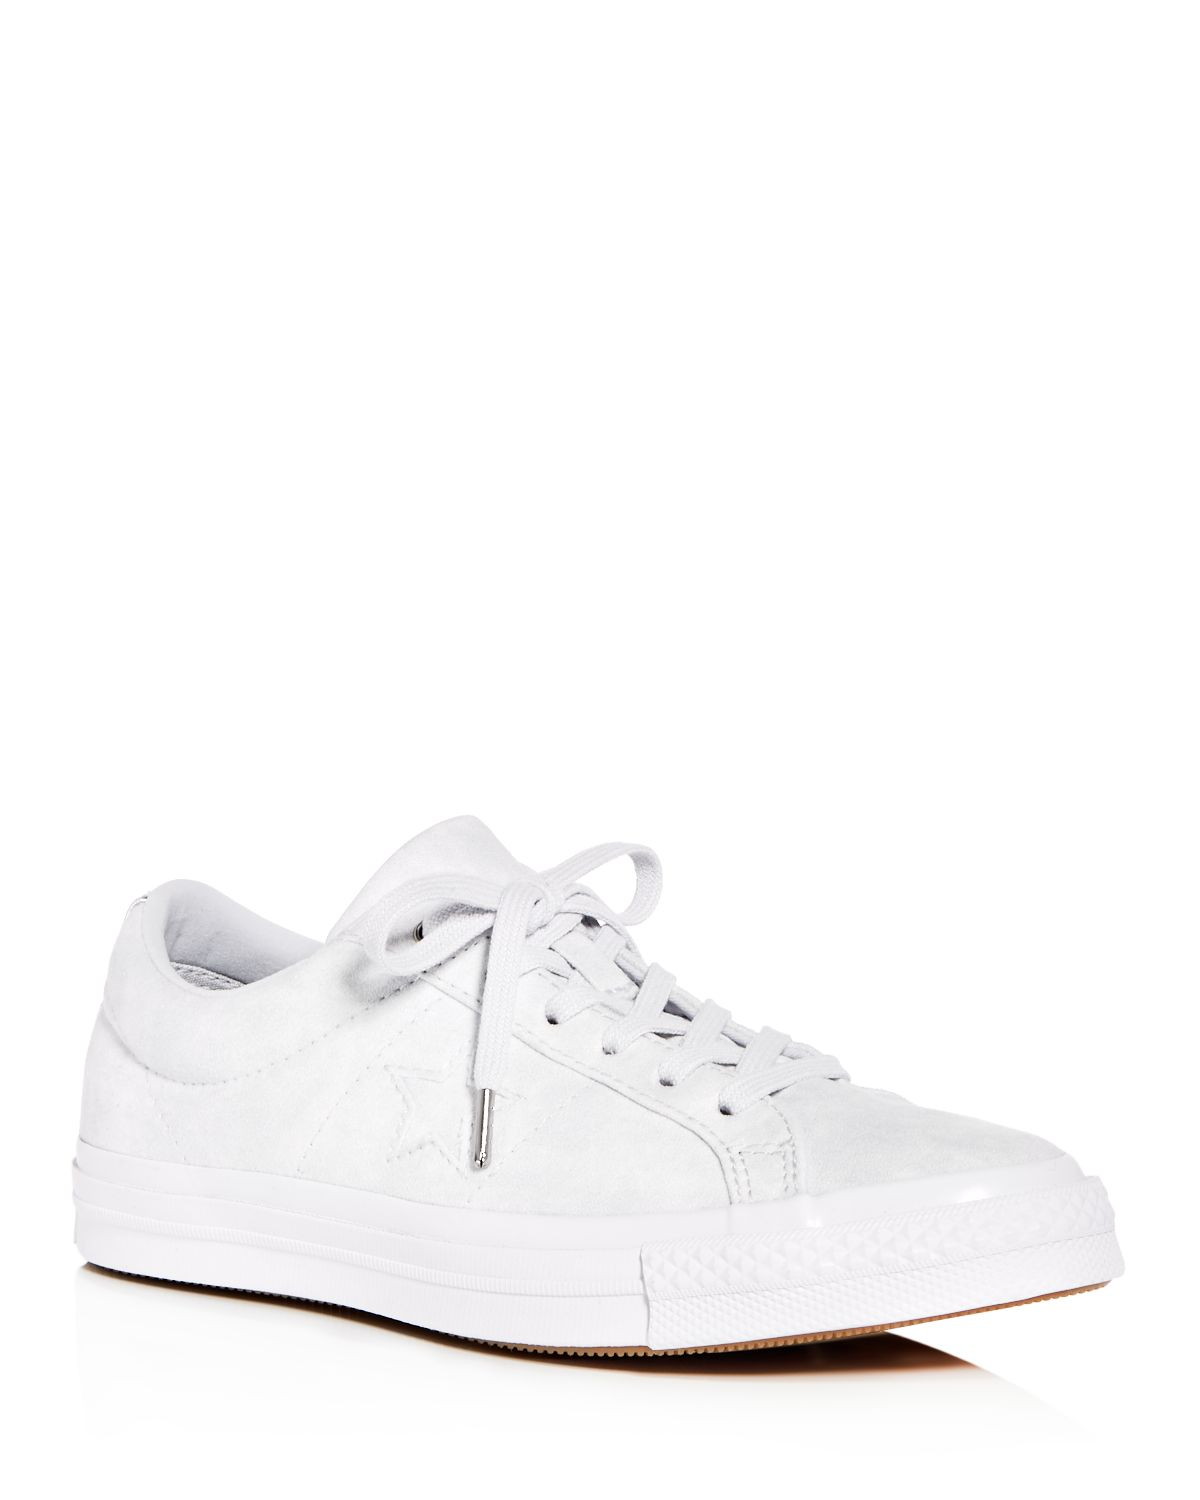 Converse Women's One Star Suede Lace Up Sneakers